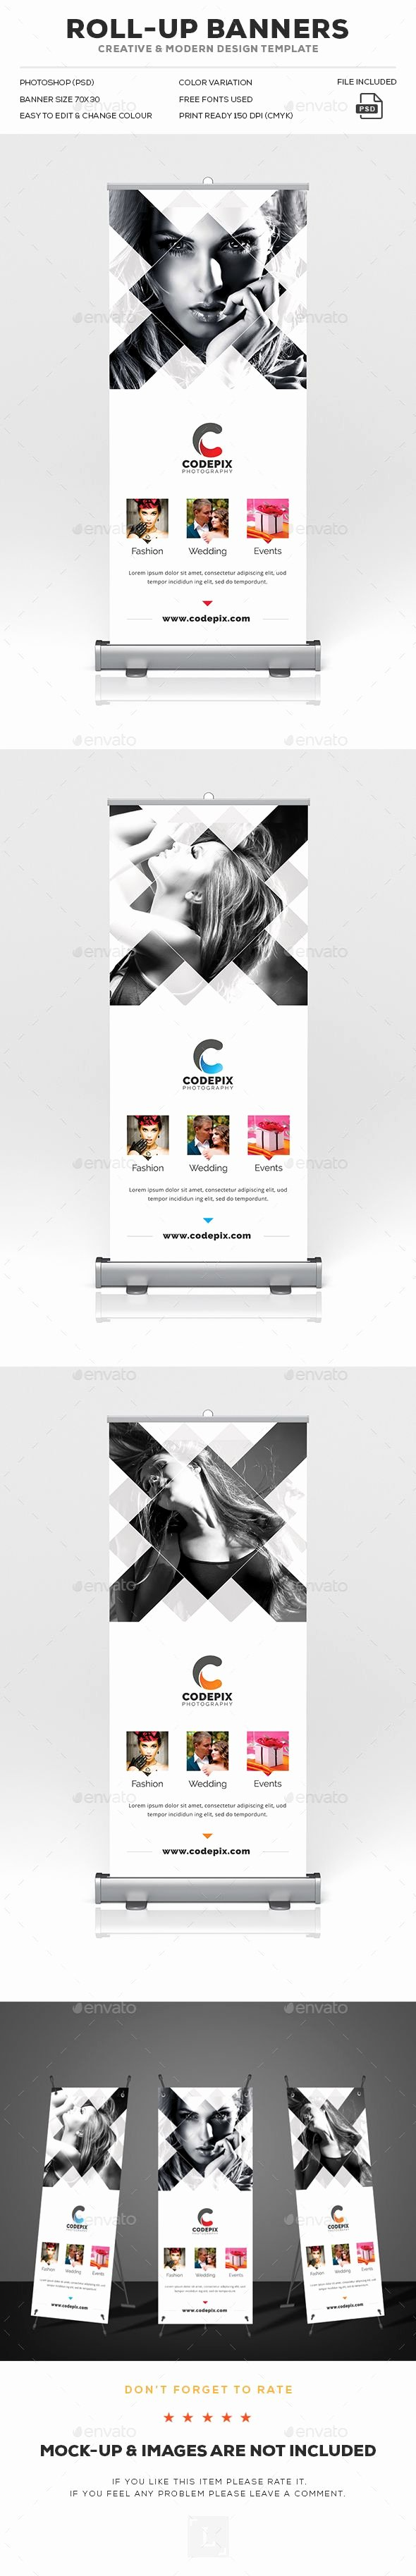 Pop Up Banner Template Lovely Graphy Roll Up Banner Template Psd Download Here… Poster